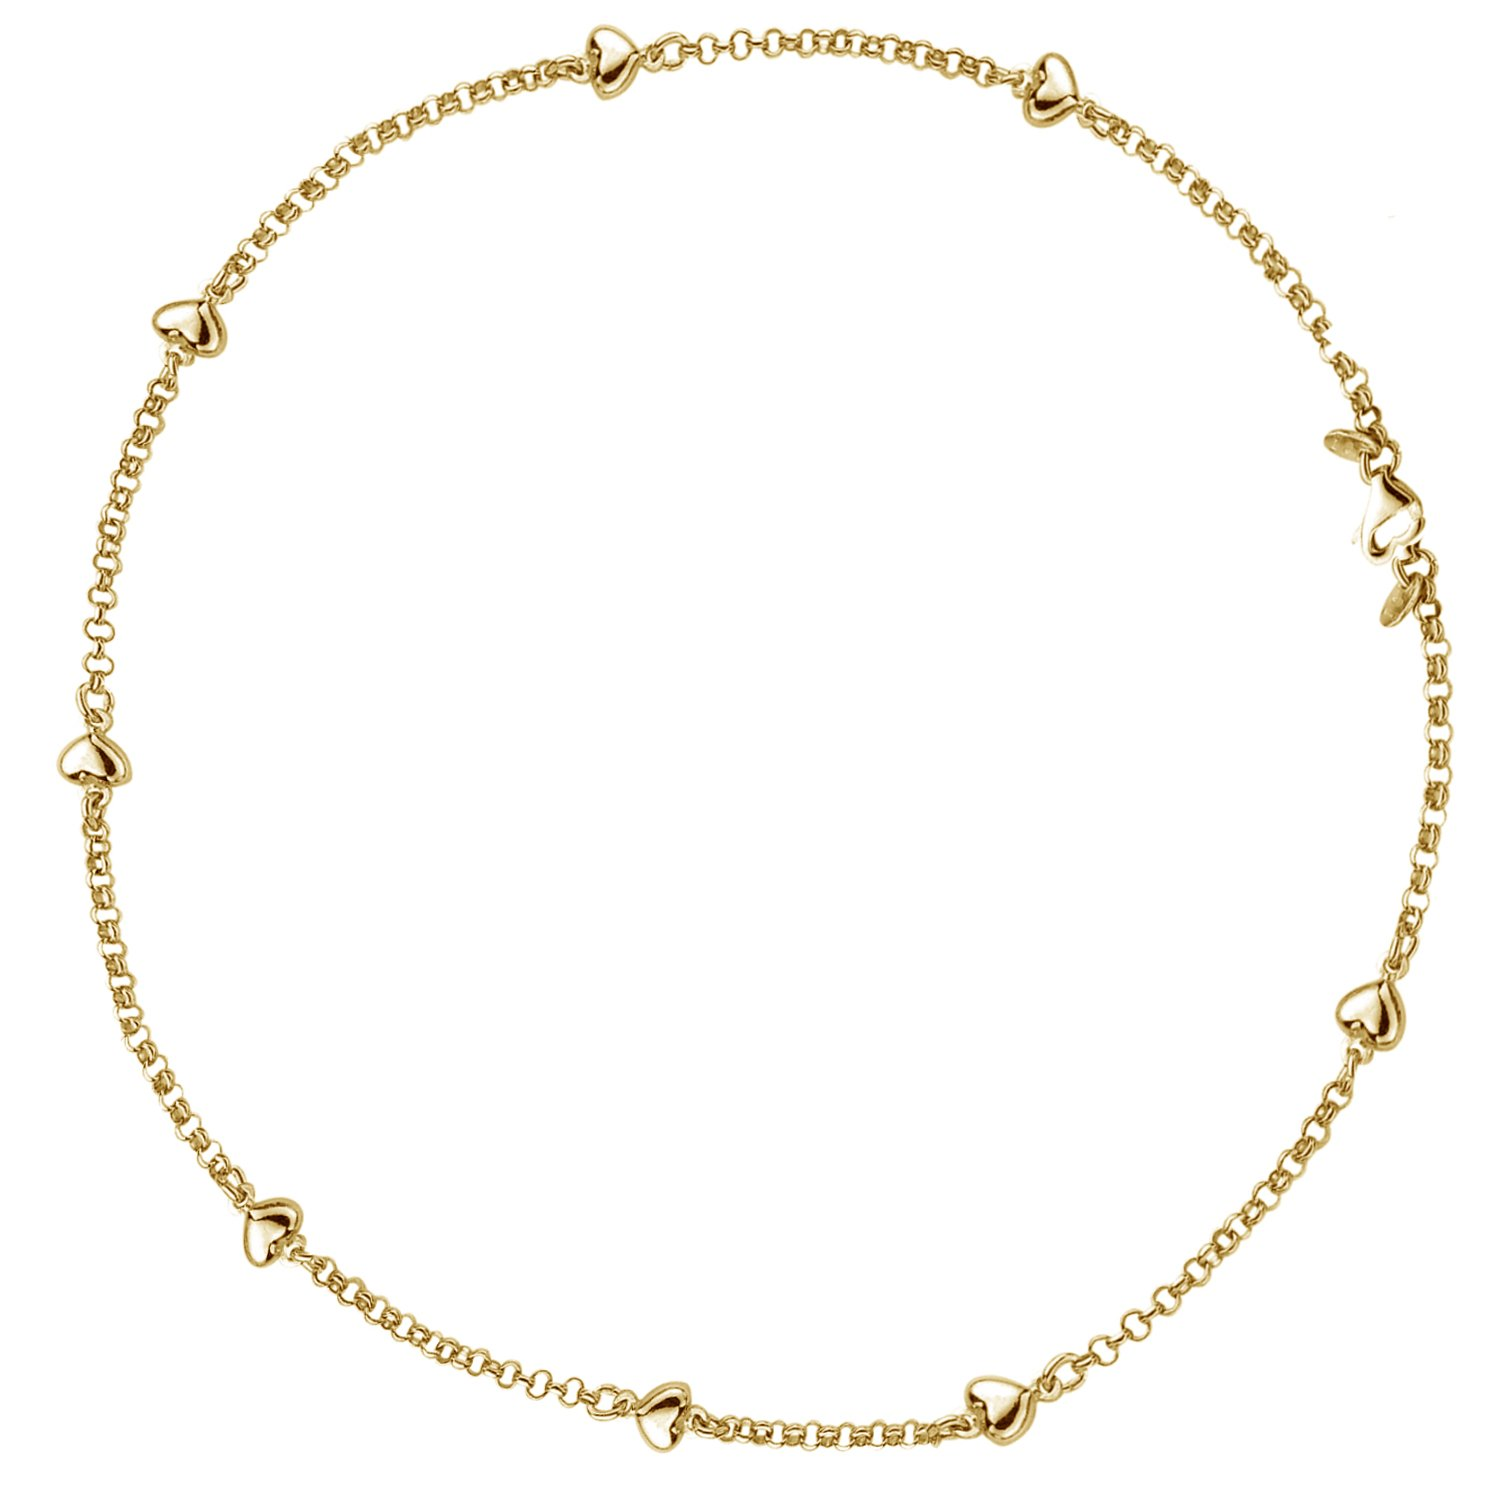 14k Real Yellow Gold Puffed Heart Love Anklet 10 Inches